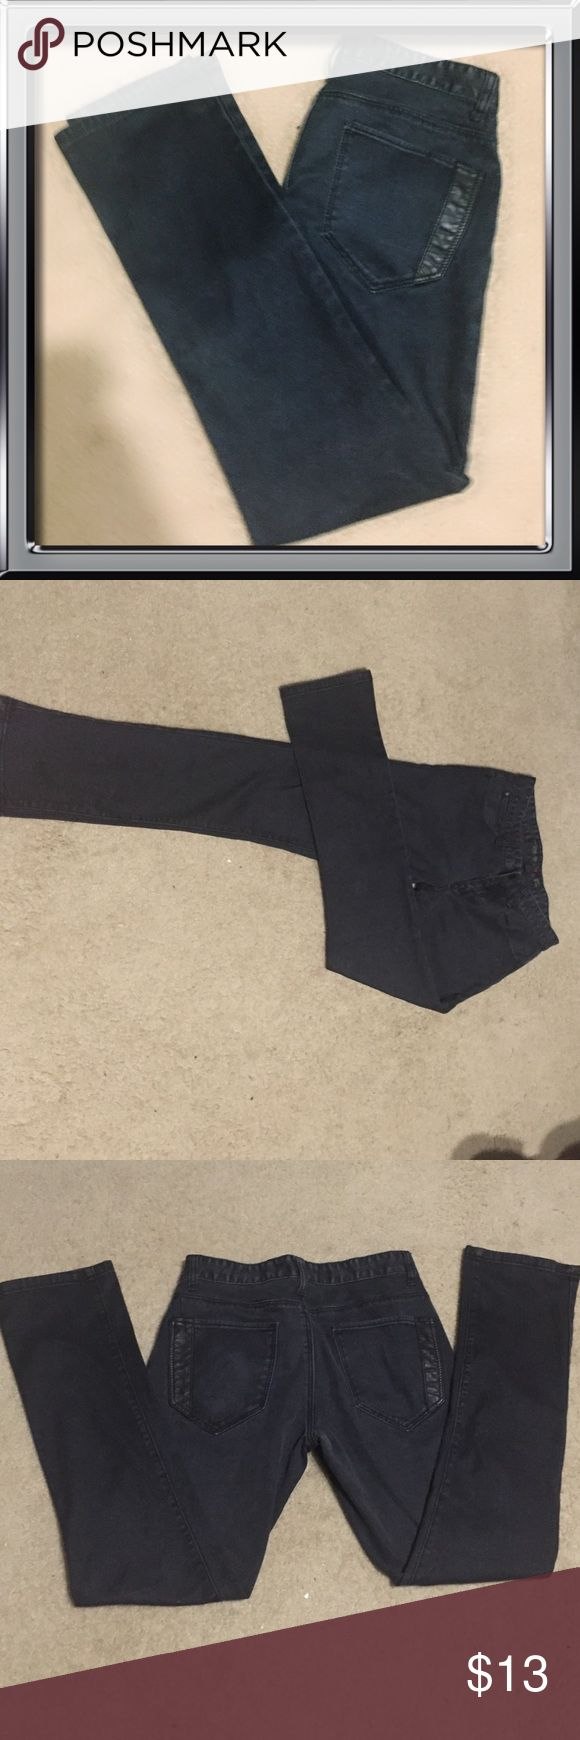 21men Black Slim Jeans 21men slim black jeans. Size 30x32. In excellent condition, minor fading from wear but no tears or fraying. Made of 70% cotton, 29% polyester, 1% elastane. 21men Jeans Slim